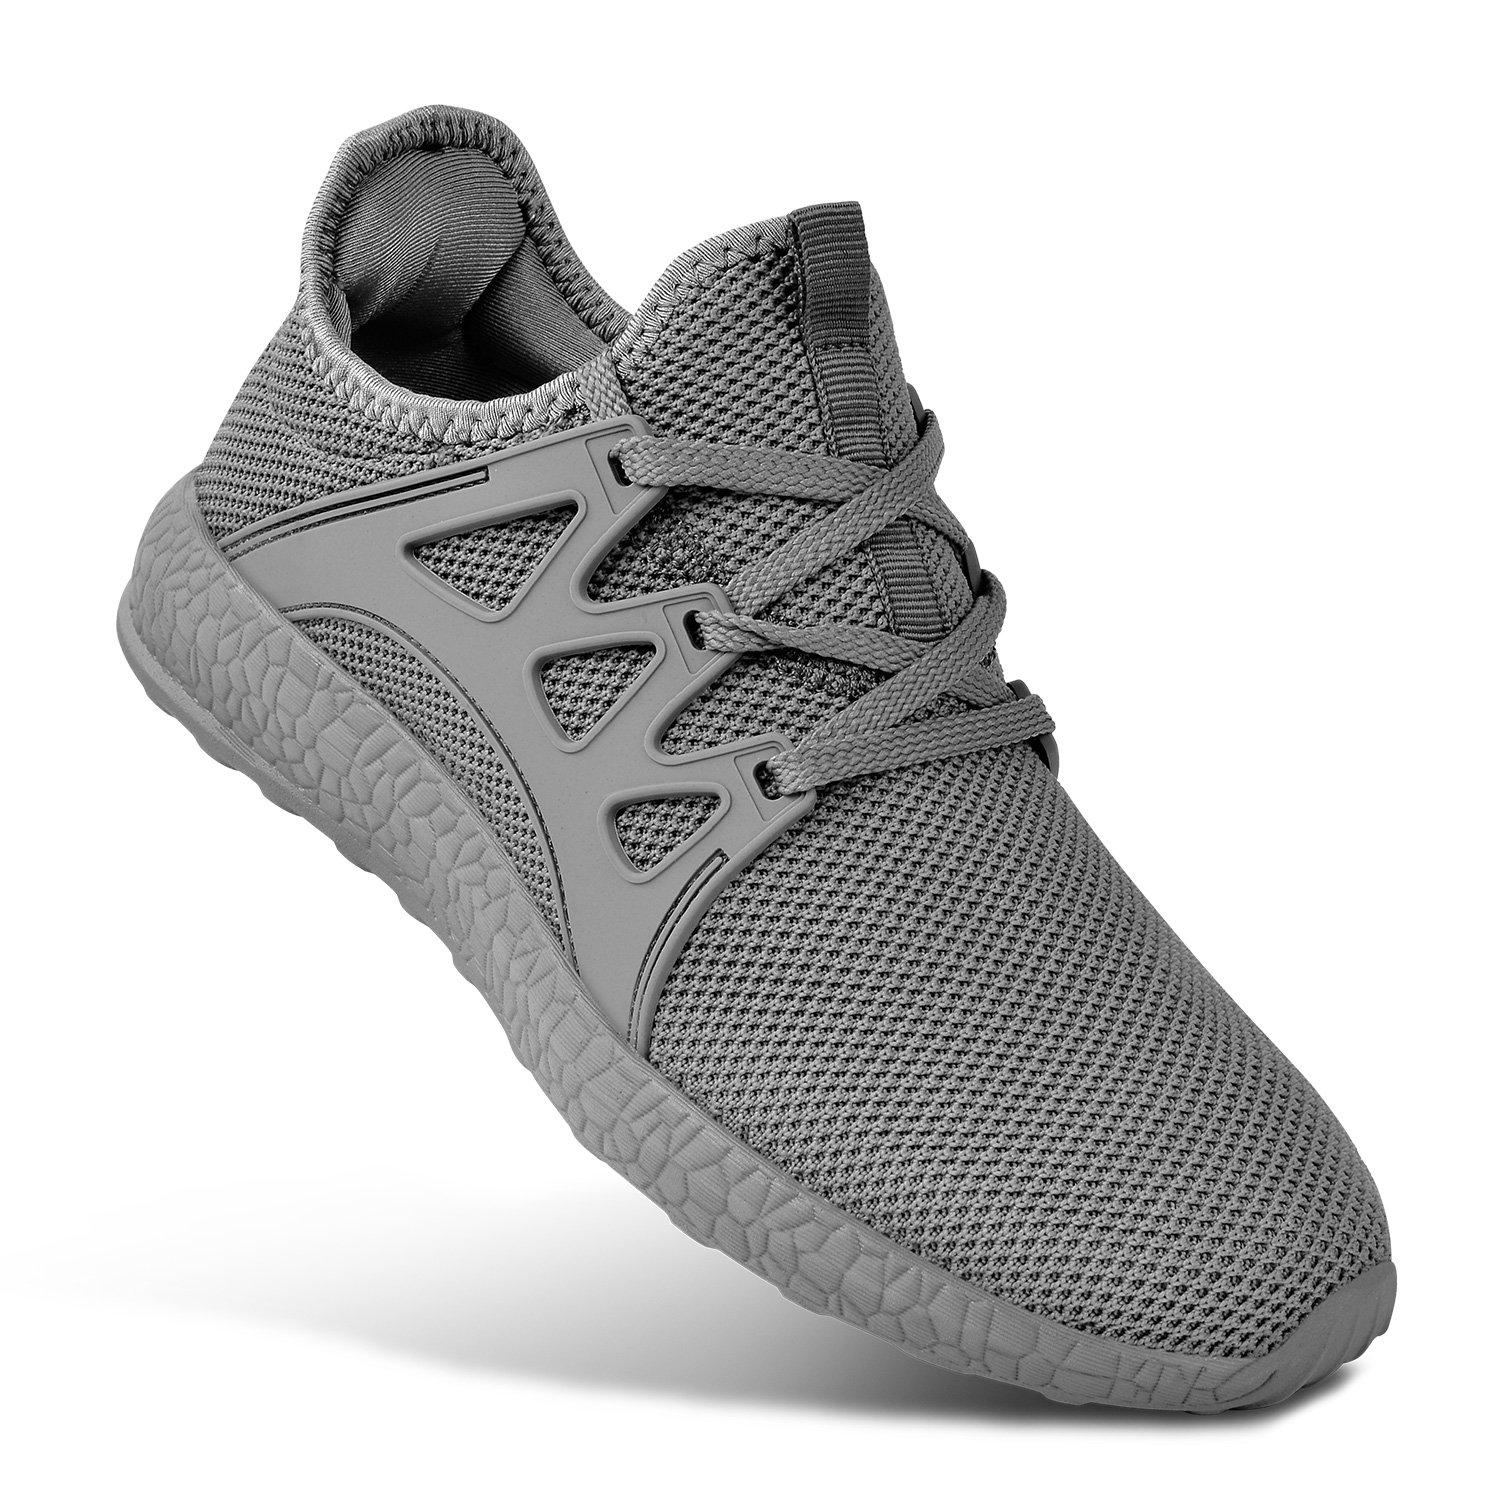 MARSVOVO Ultra Light Mens Sneakers Summer Mesh Breathable Sports Shoes Men Jogging Shoes Adults Grey Size 8